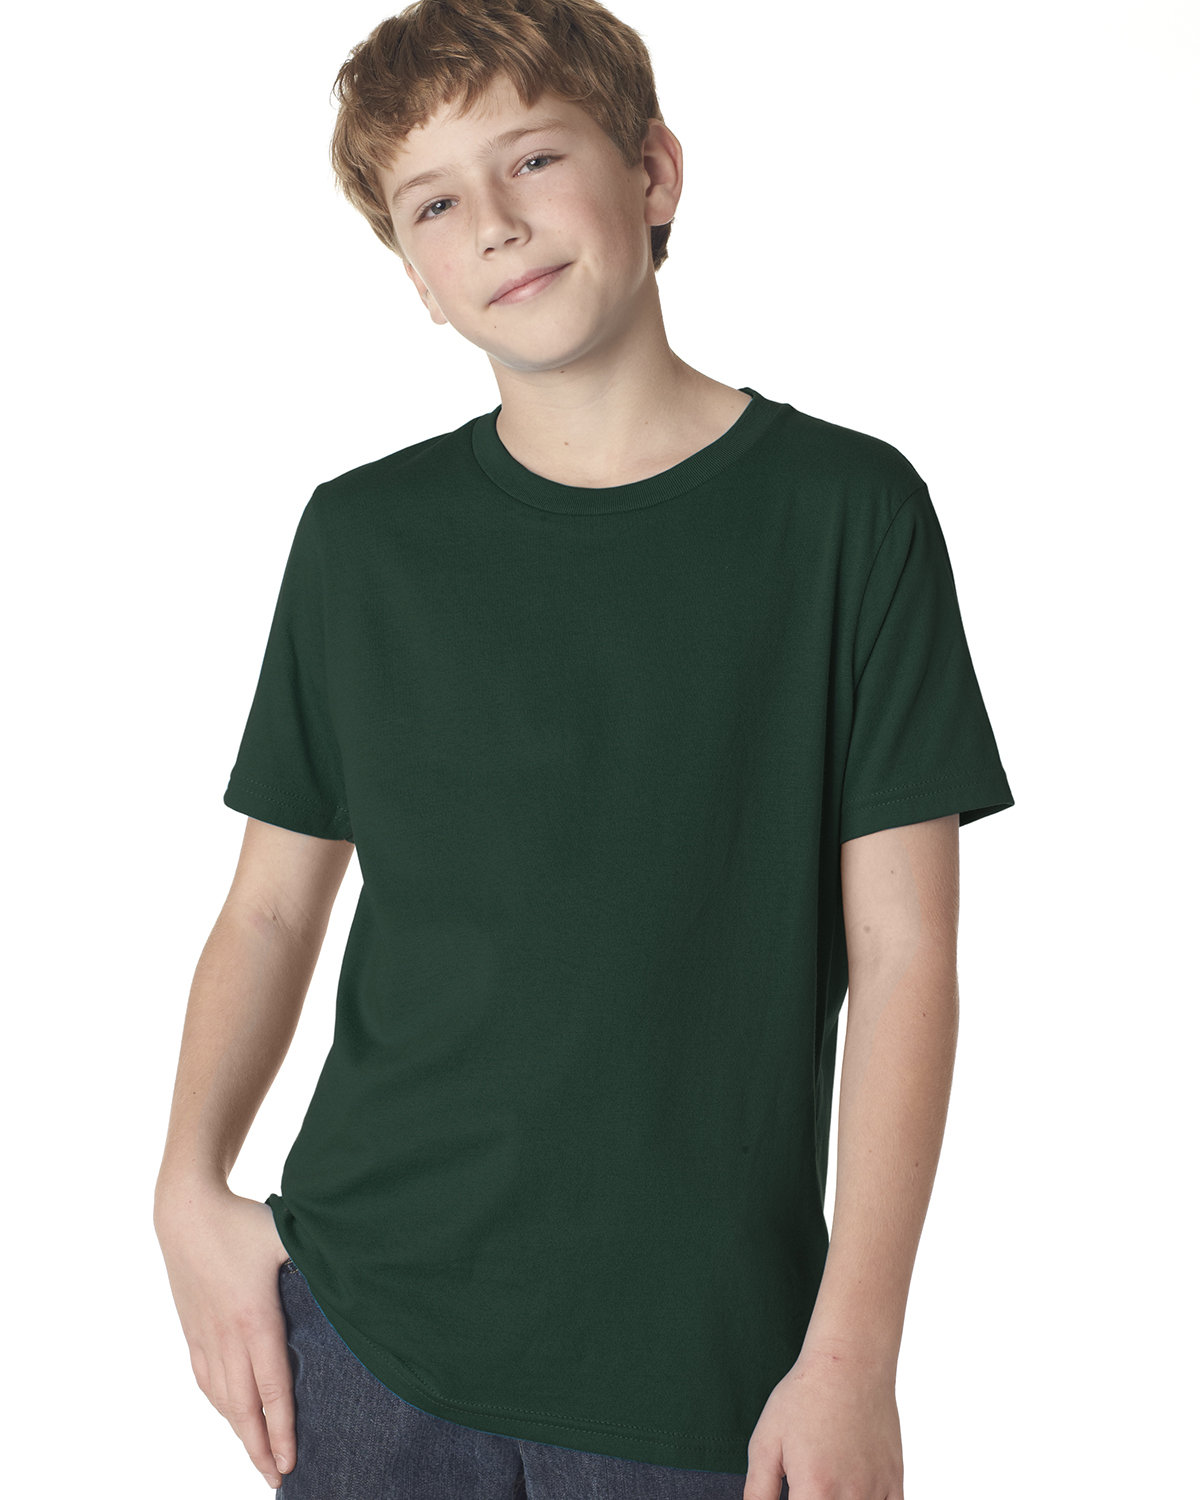 Next Level Youth Boys' Cotton Crew FOREST GREEN